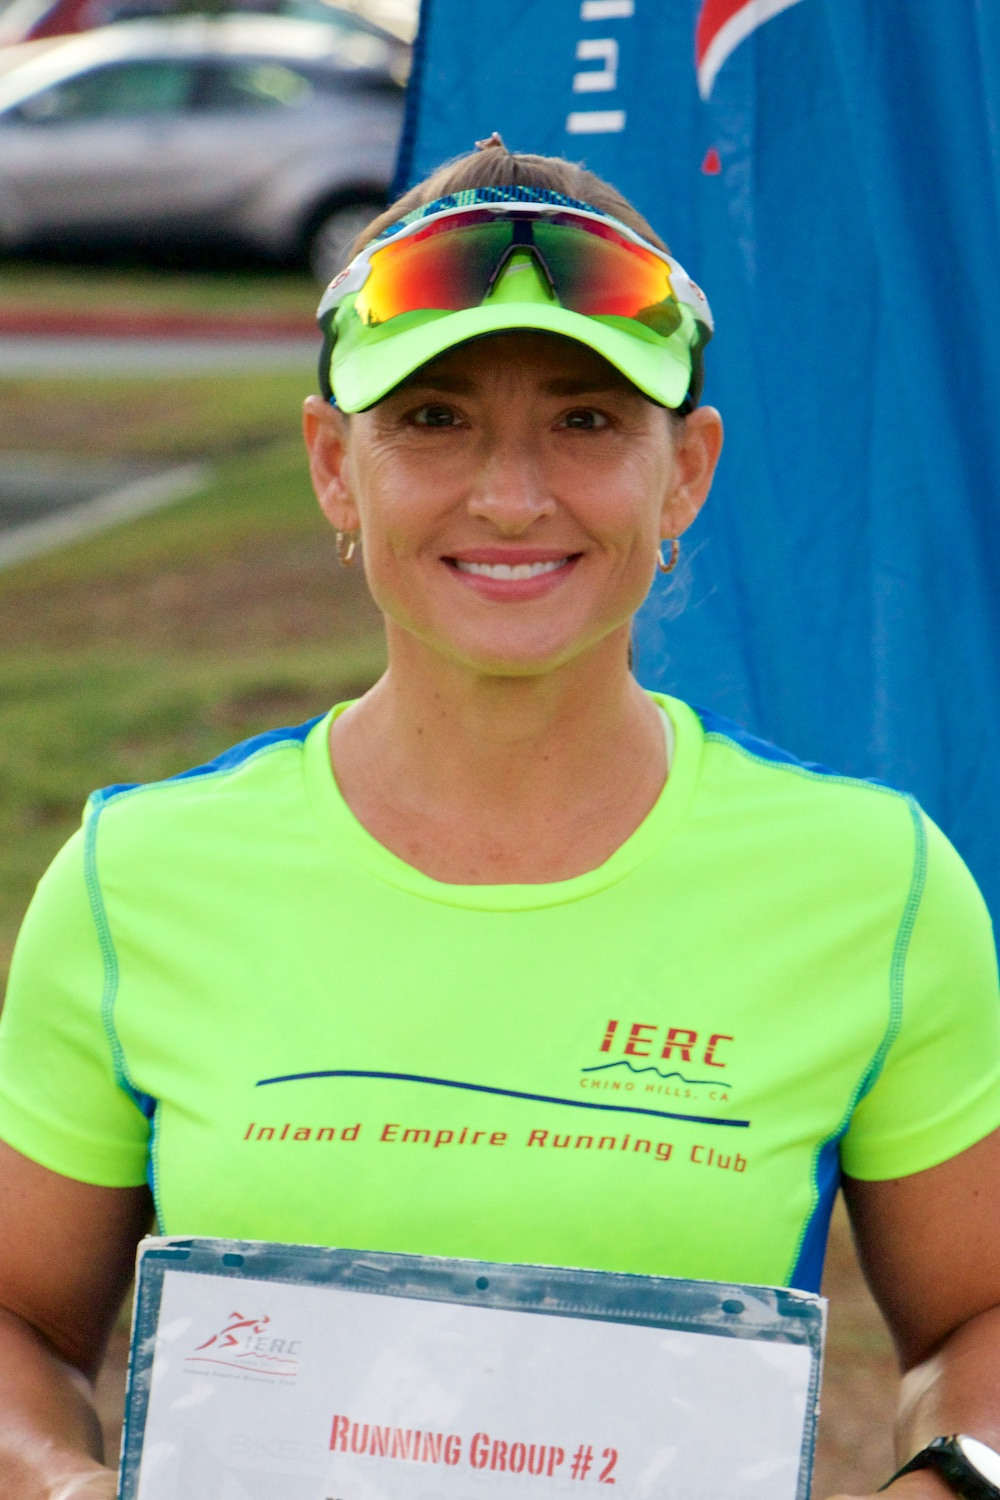 Brenda Daley - 8:30/mile race pace10:00/mile aerobic pace